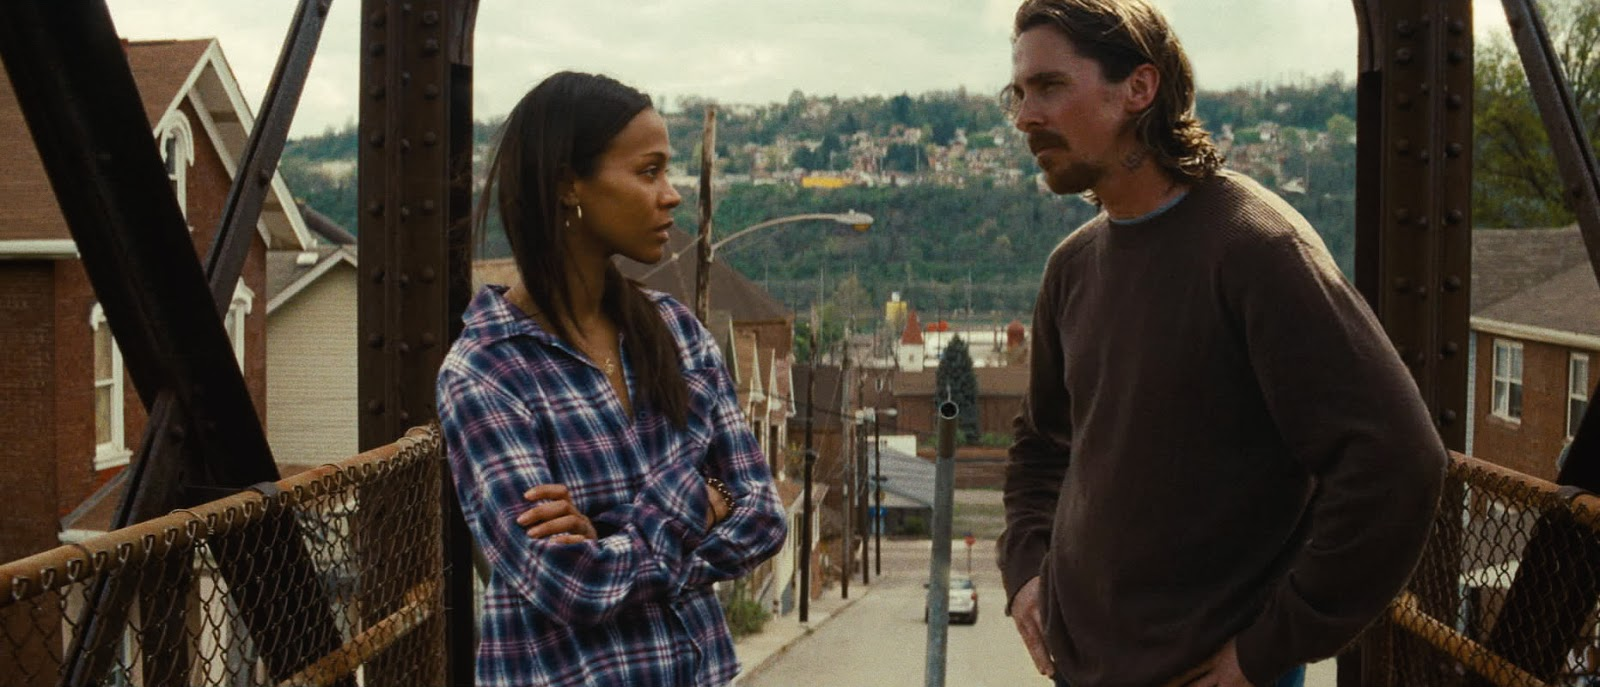 Reel Talk Online: Review: 'OUT OF THE FURNACE', Despite ...